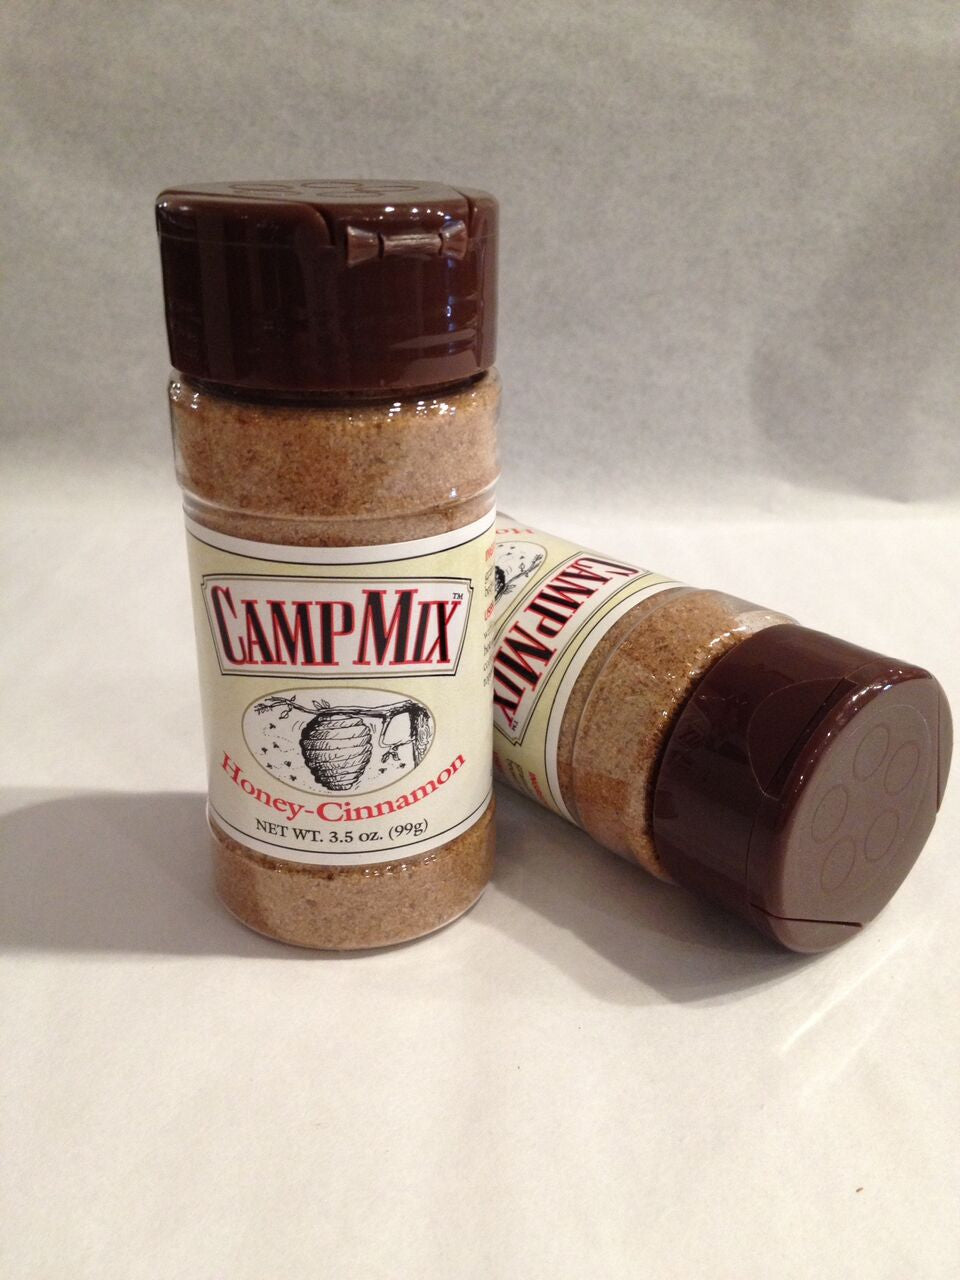 Honey-Cinnamon CAMP MIX is a mouthwatering blend of brown sugar, honey solids and cinnamon